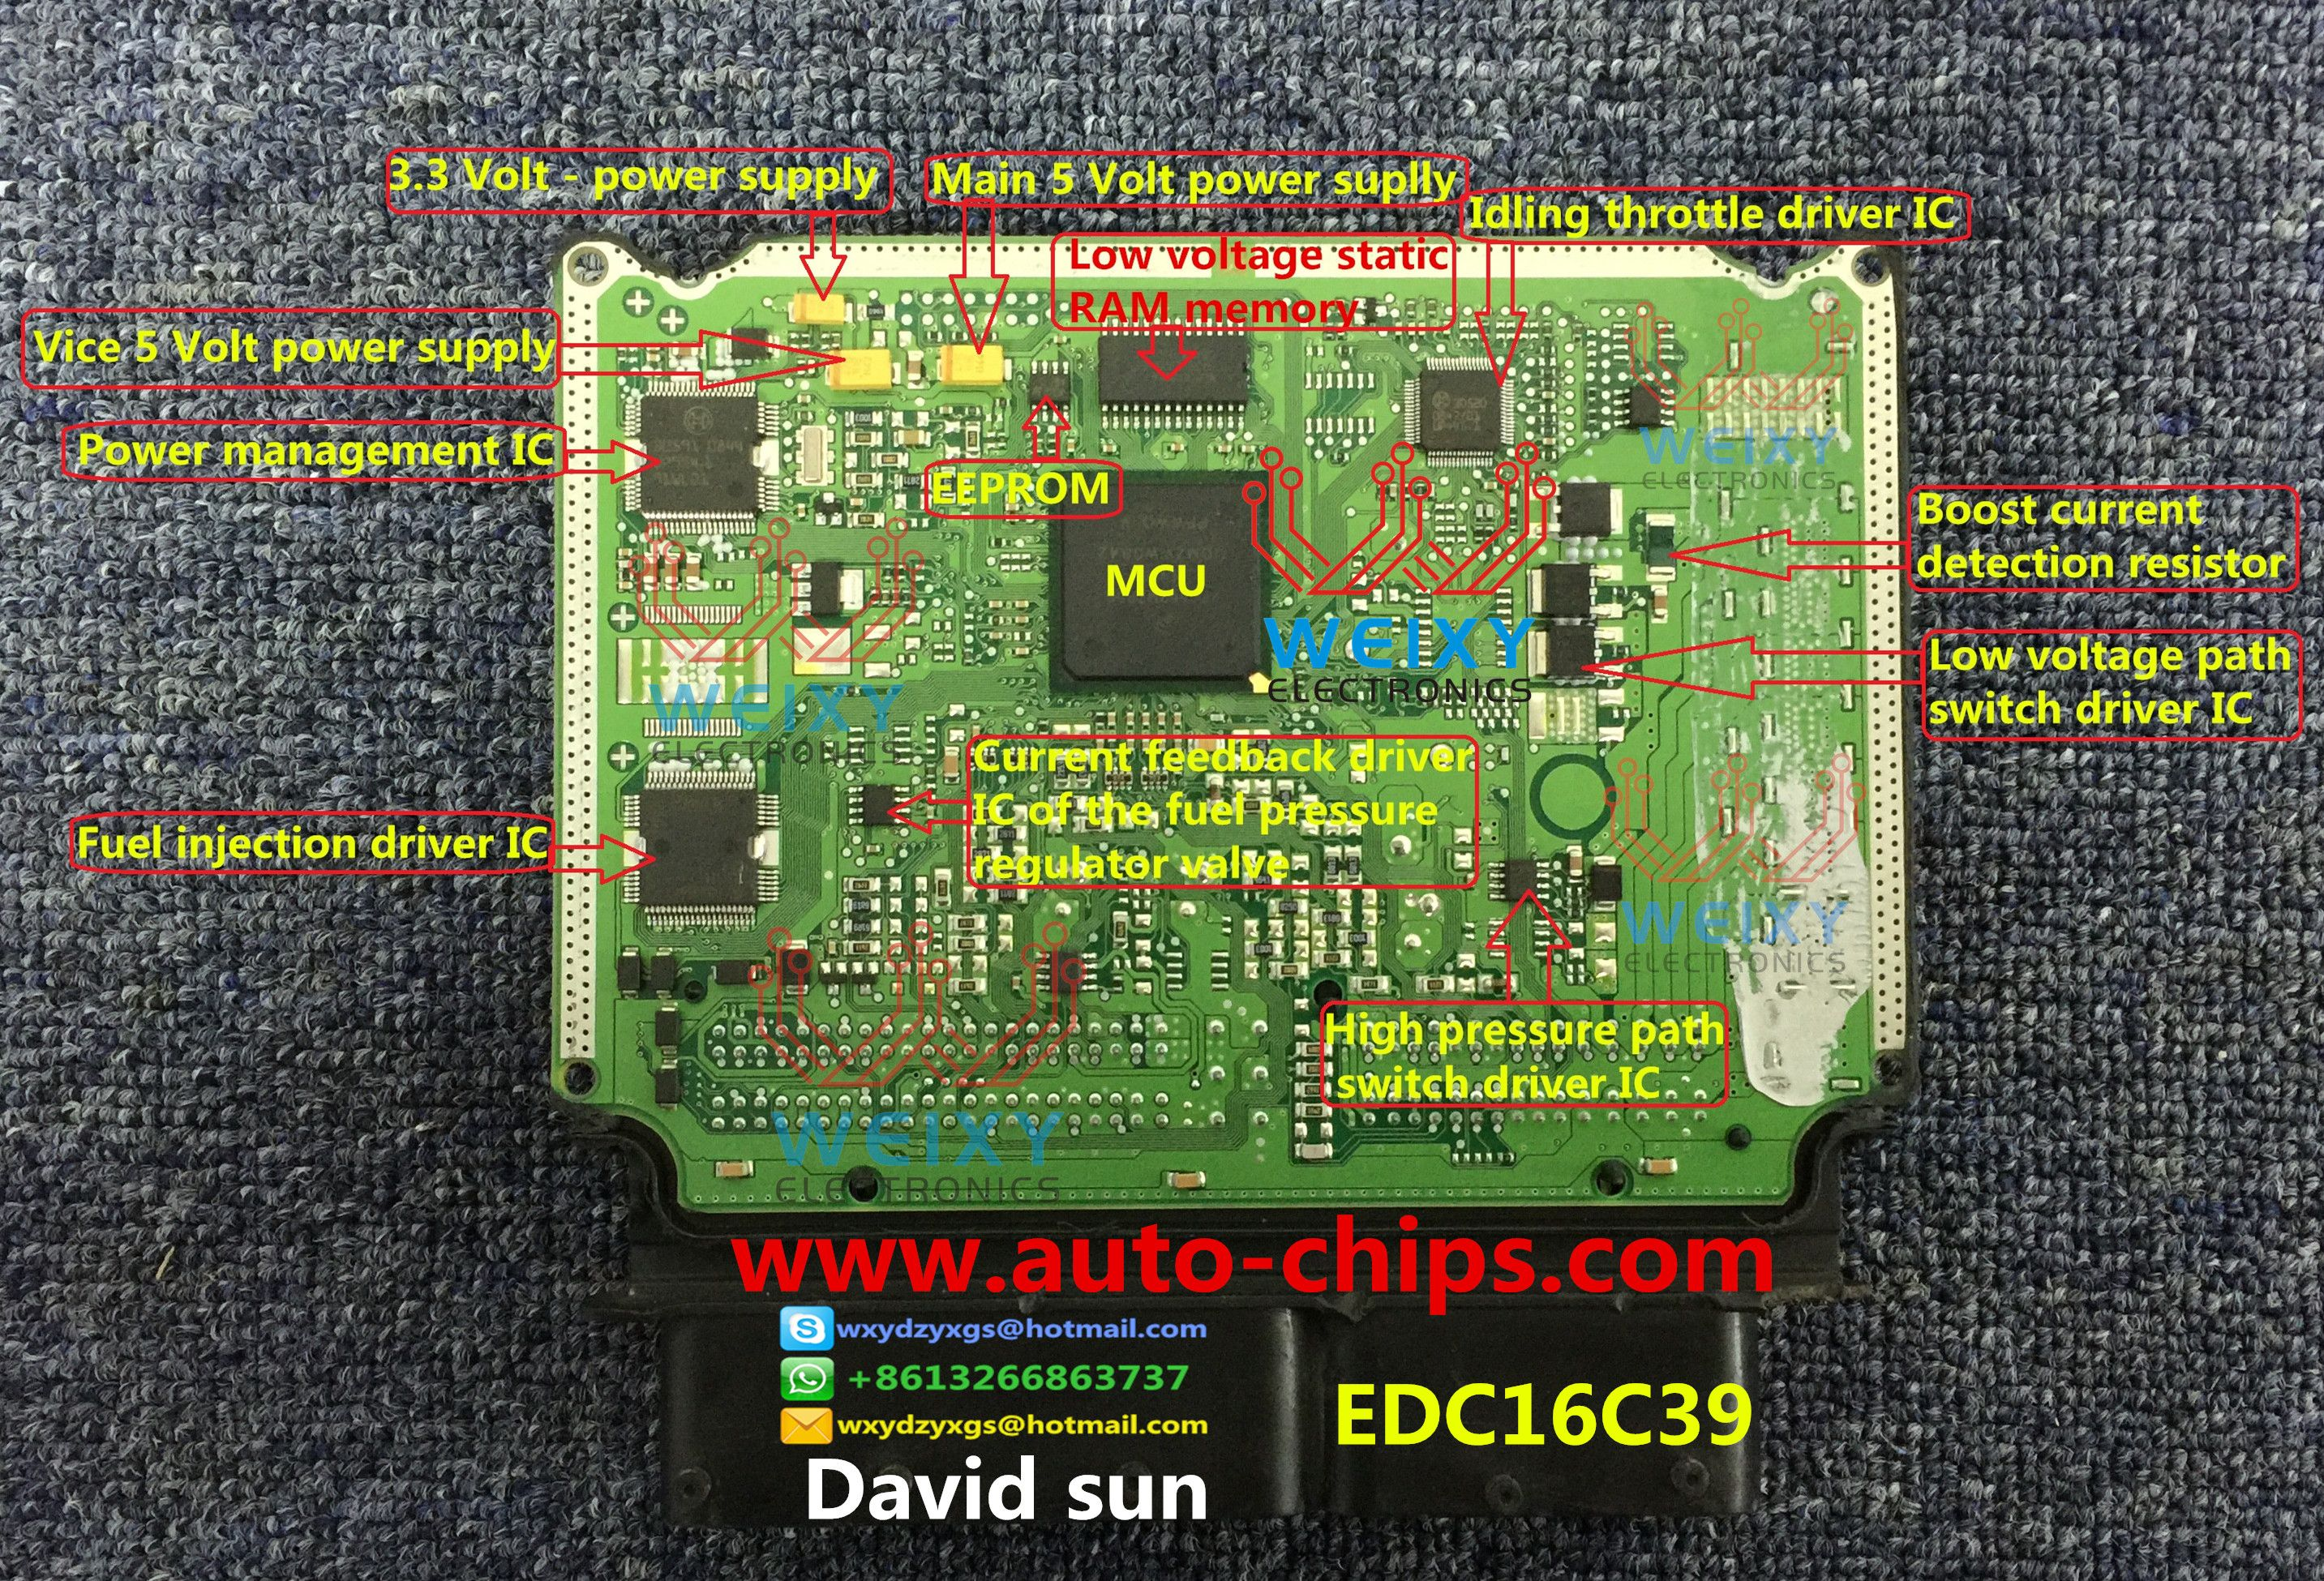 hight resolution of the inner board functional diagram for edc16c39 www auto chips com